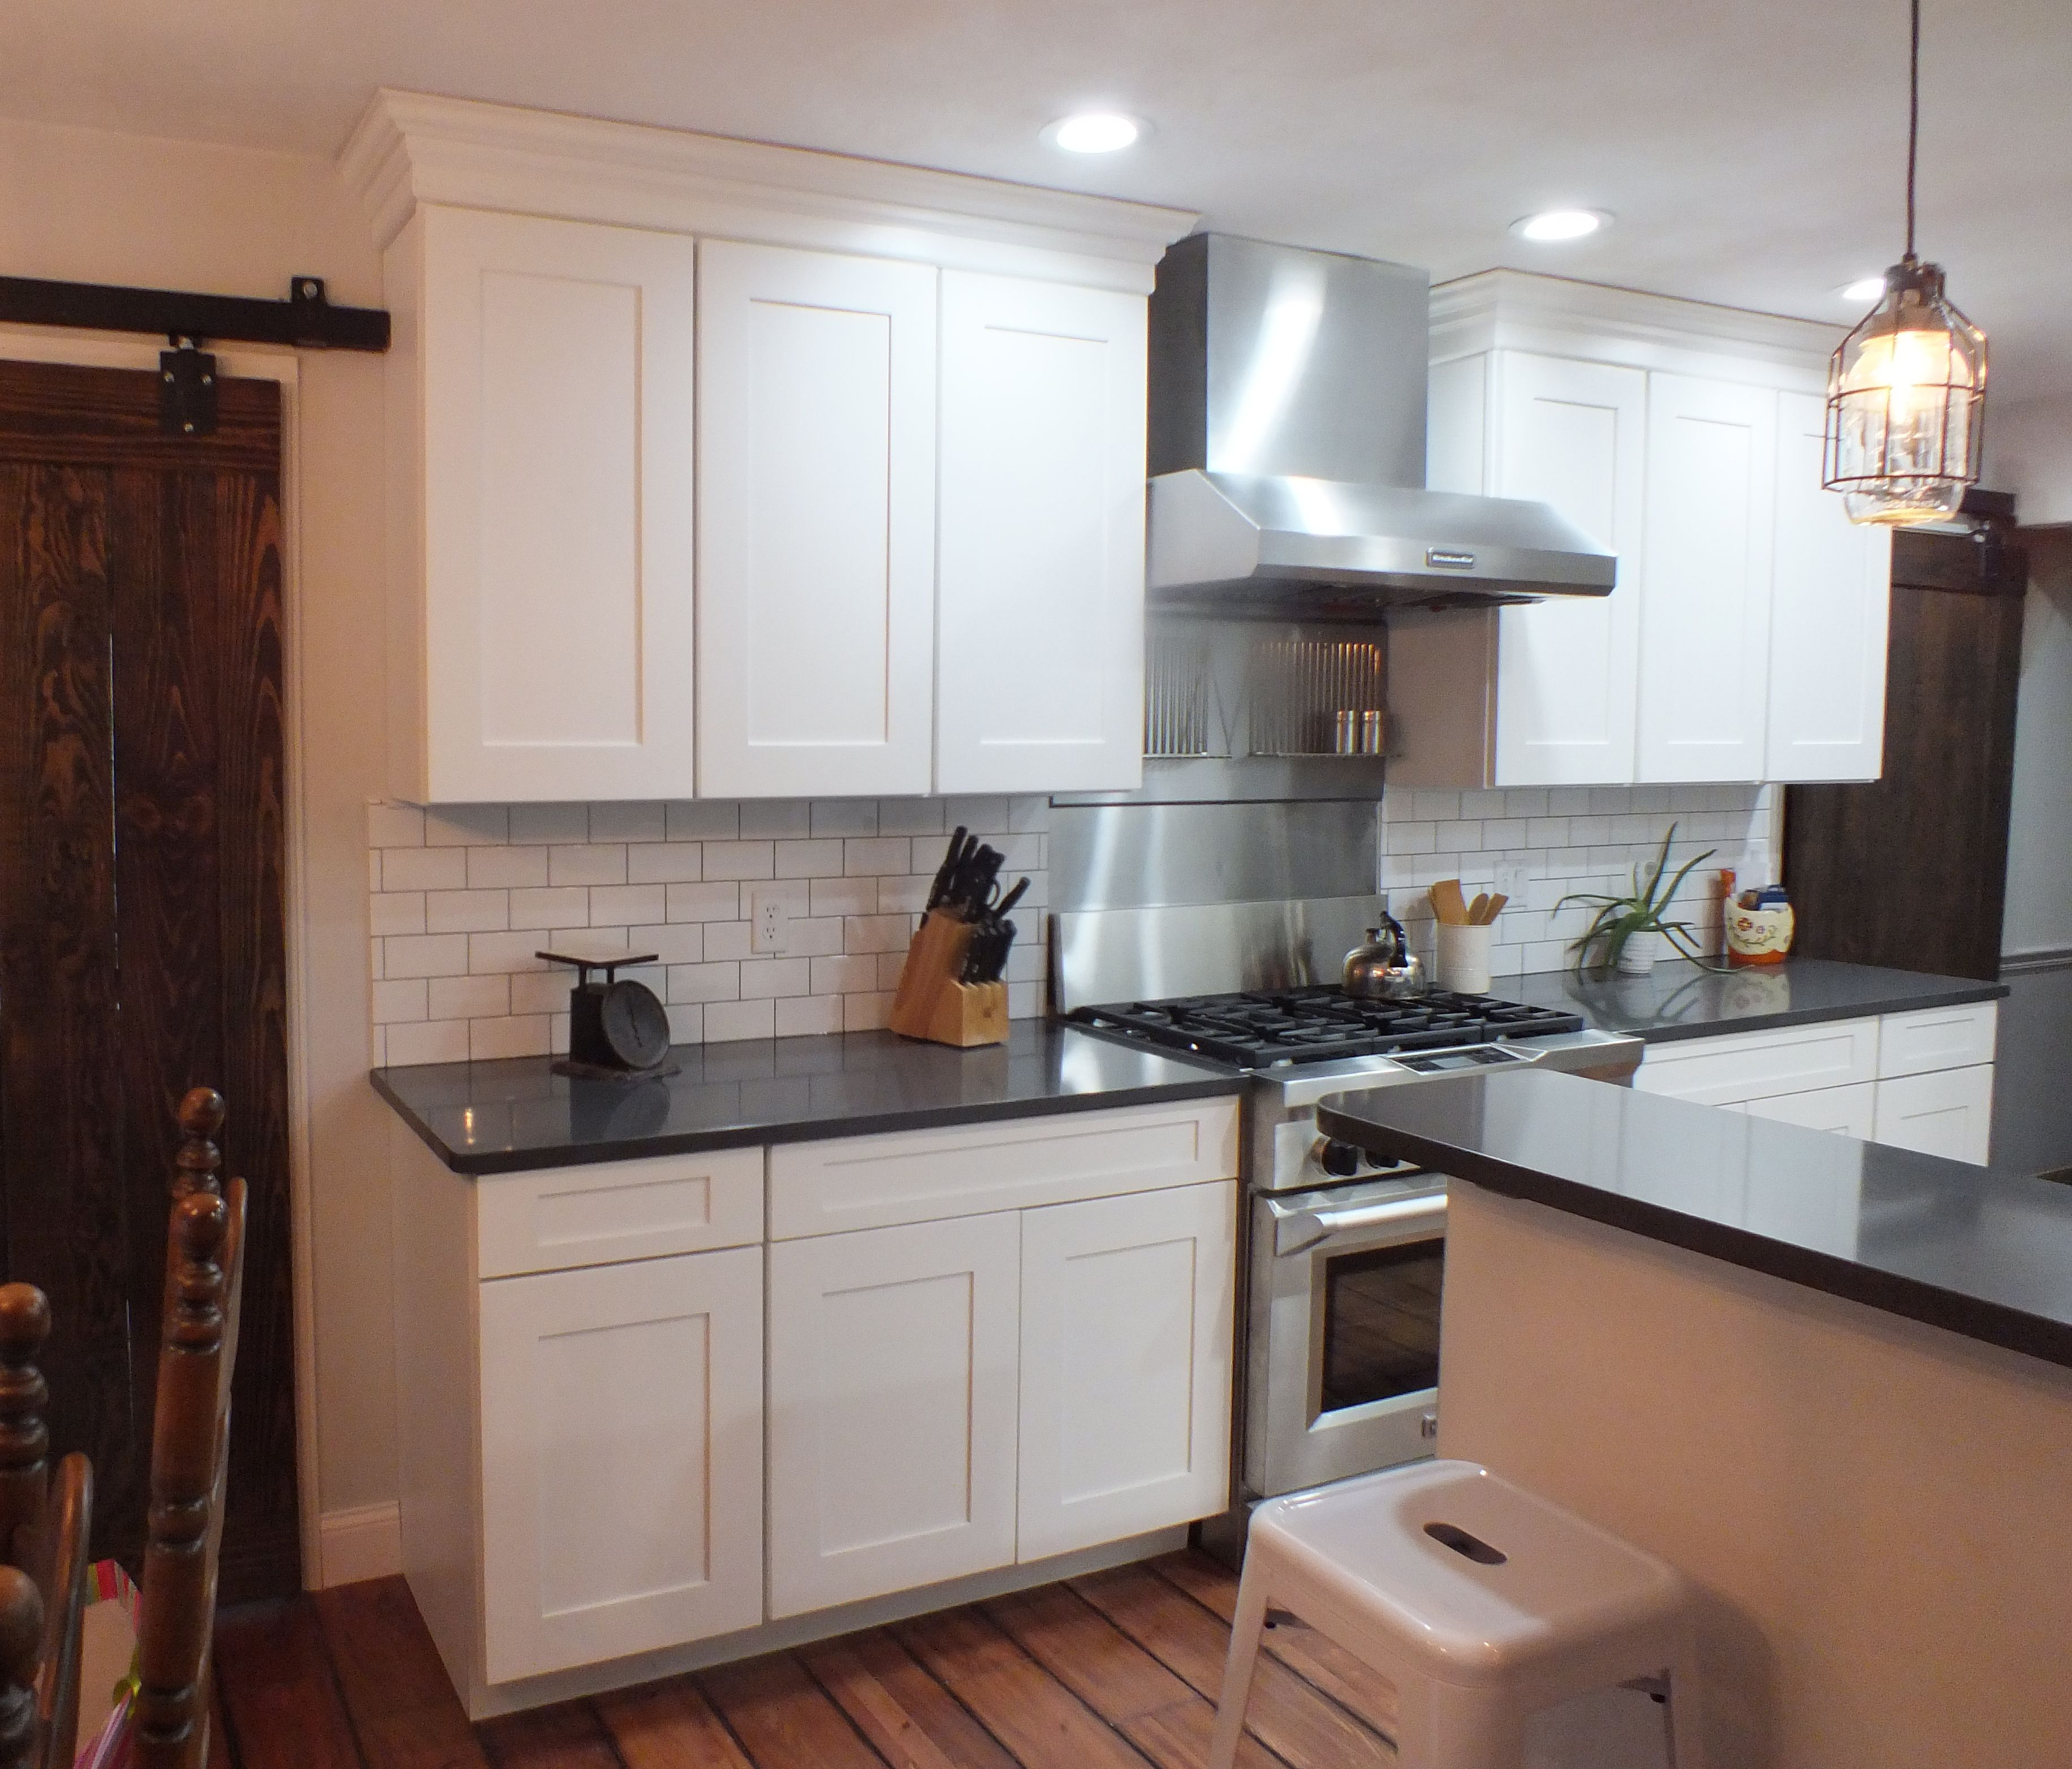 Mid continent cabinetry jacobsen white maple with a 5 - Mid continent cabinets ...